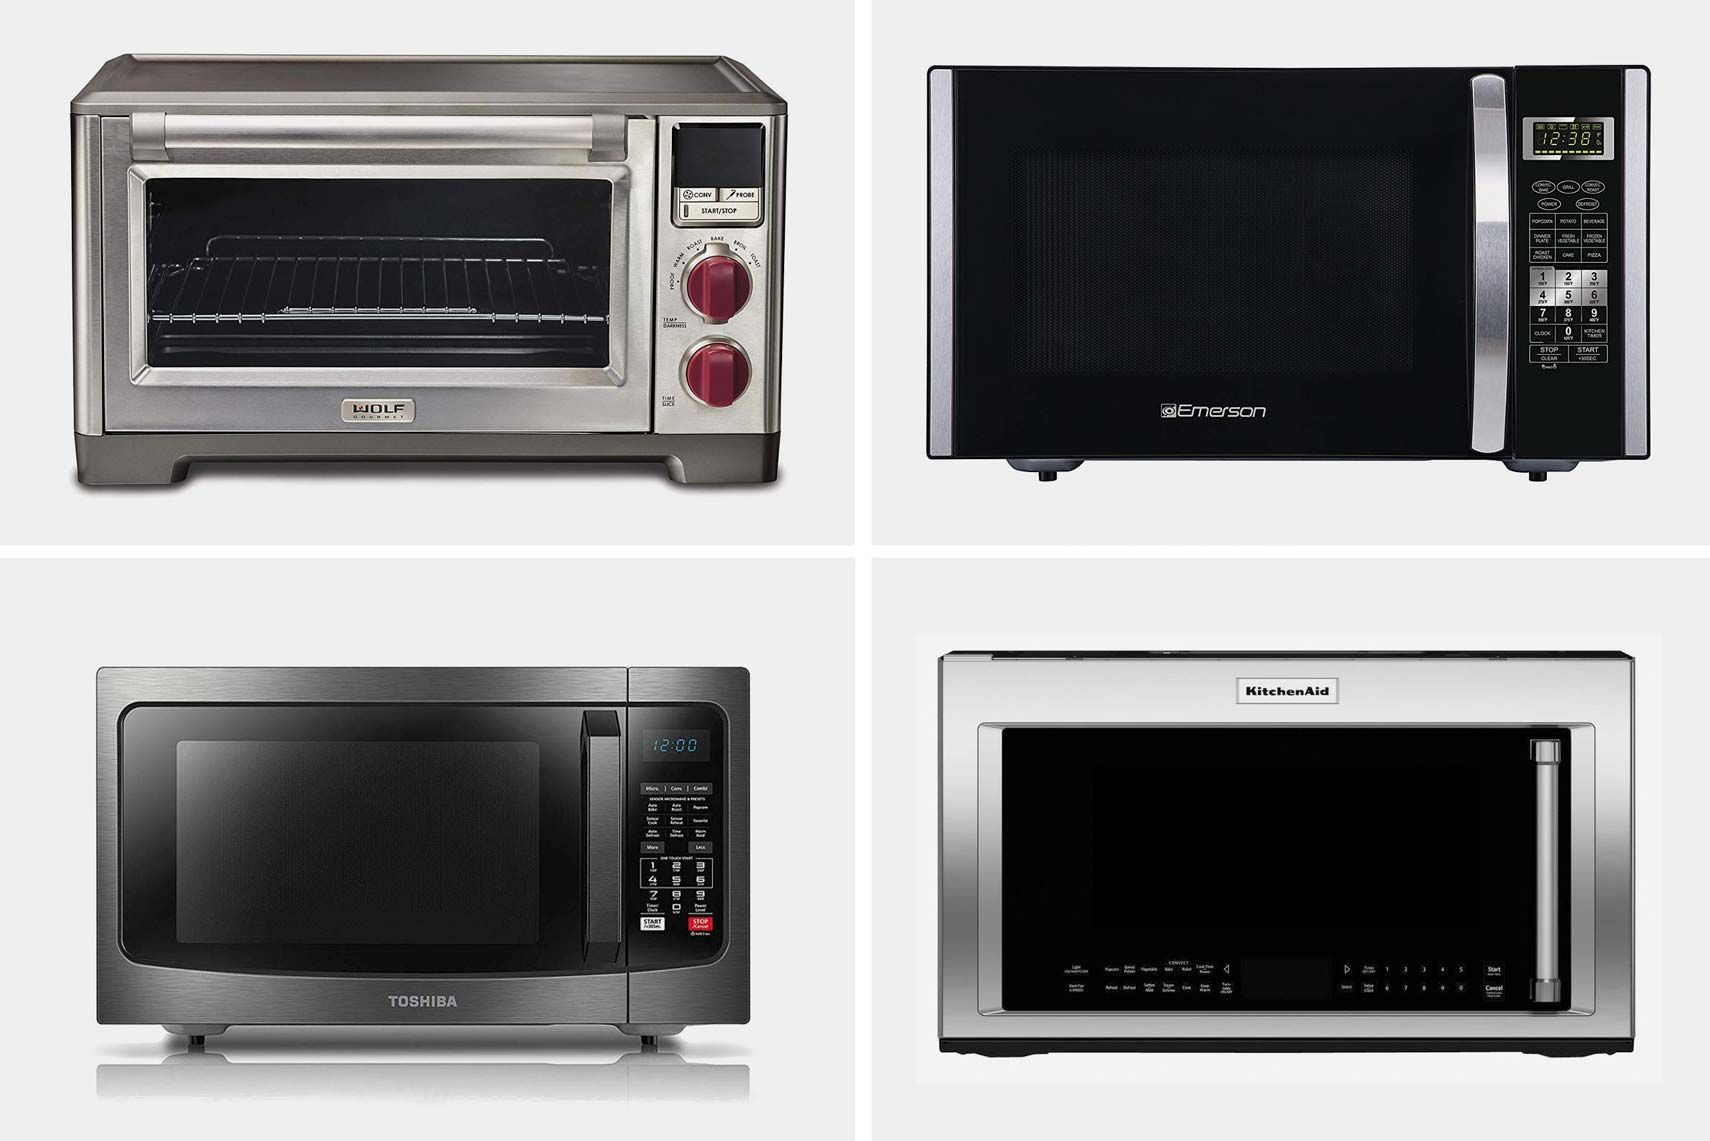 The 10 Best Convection Microwave Ovens Microwave Convection Oven Best Convection Microwave Convection Microwaves